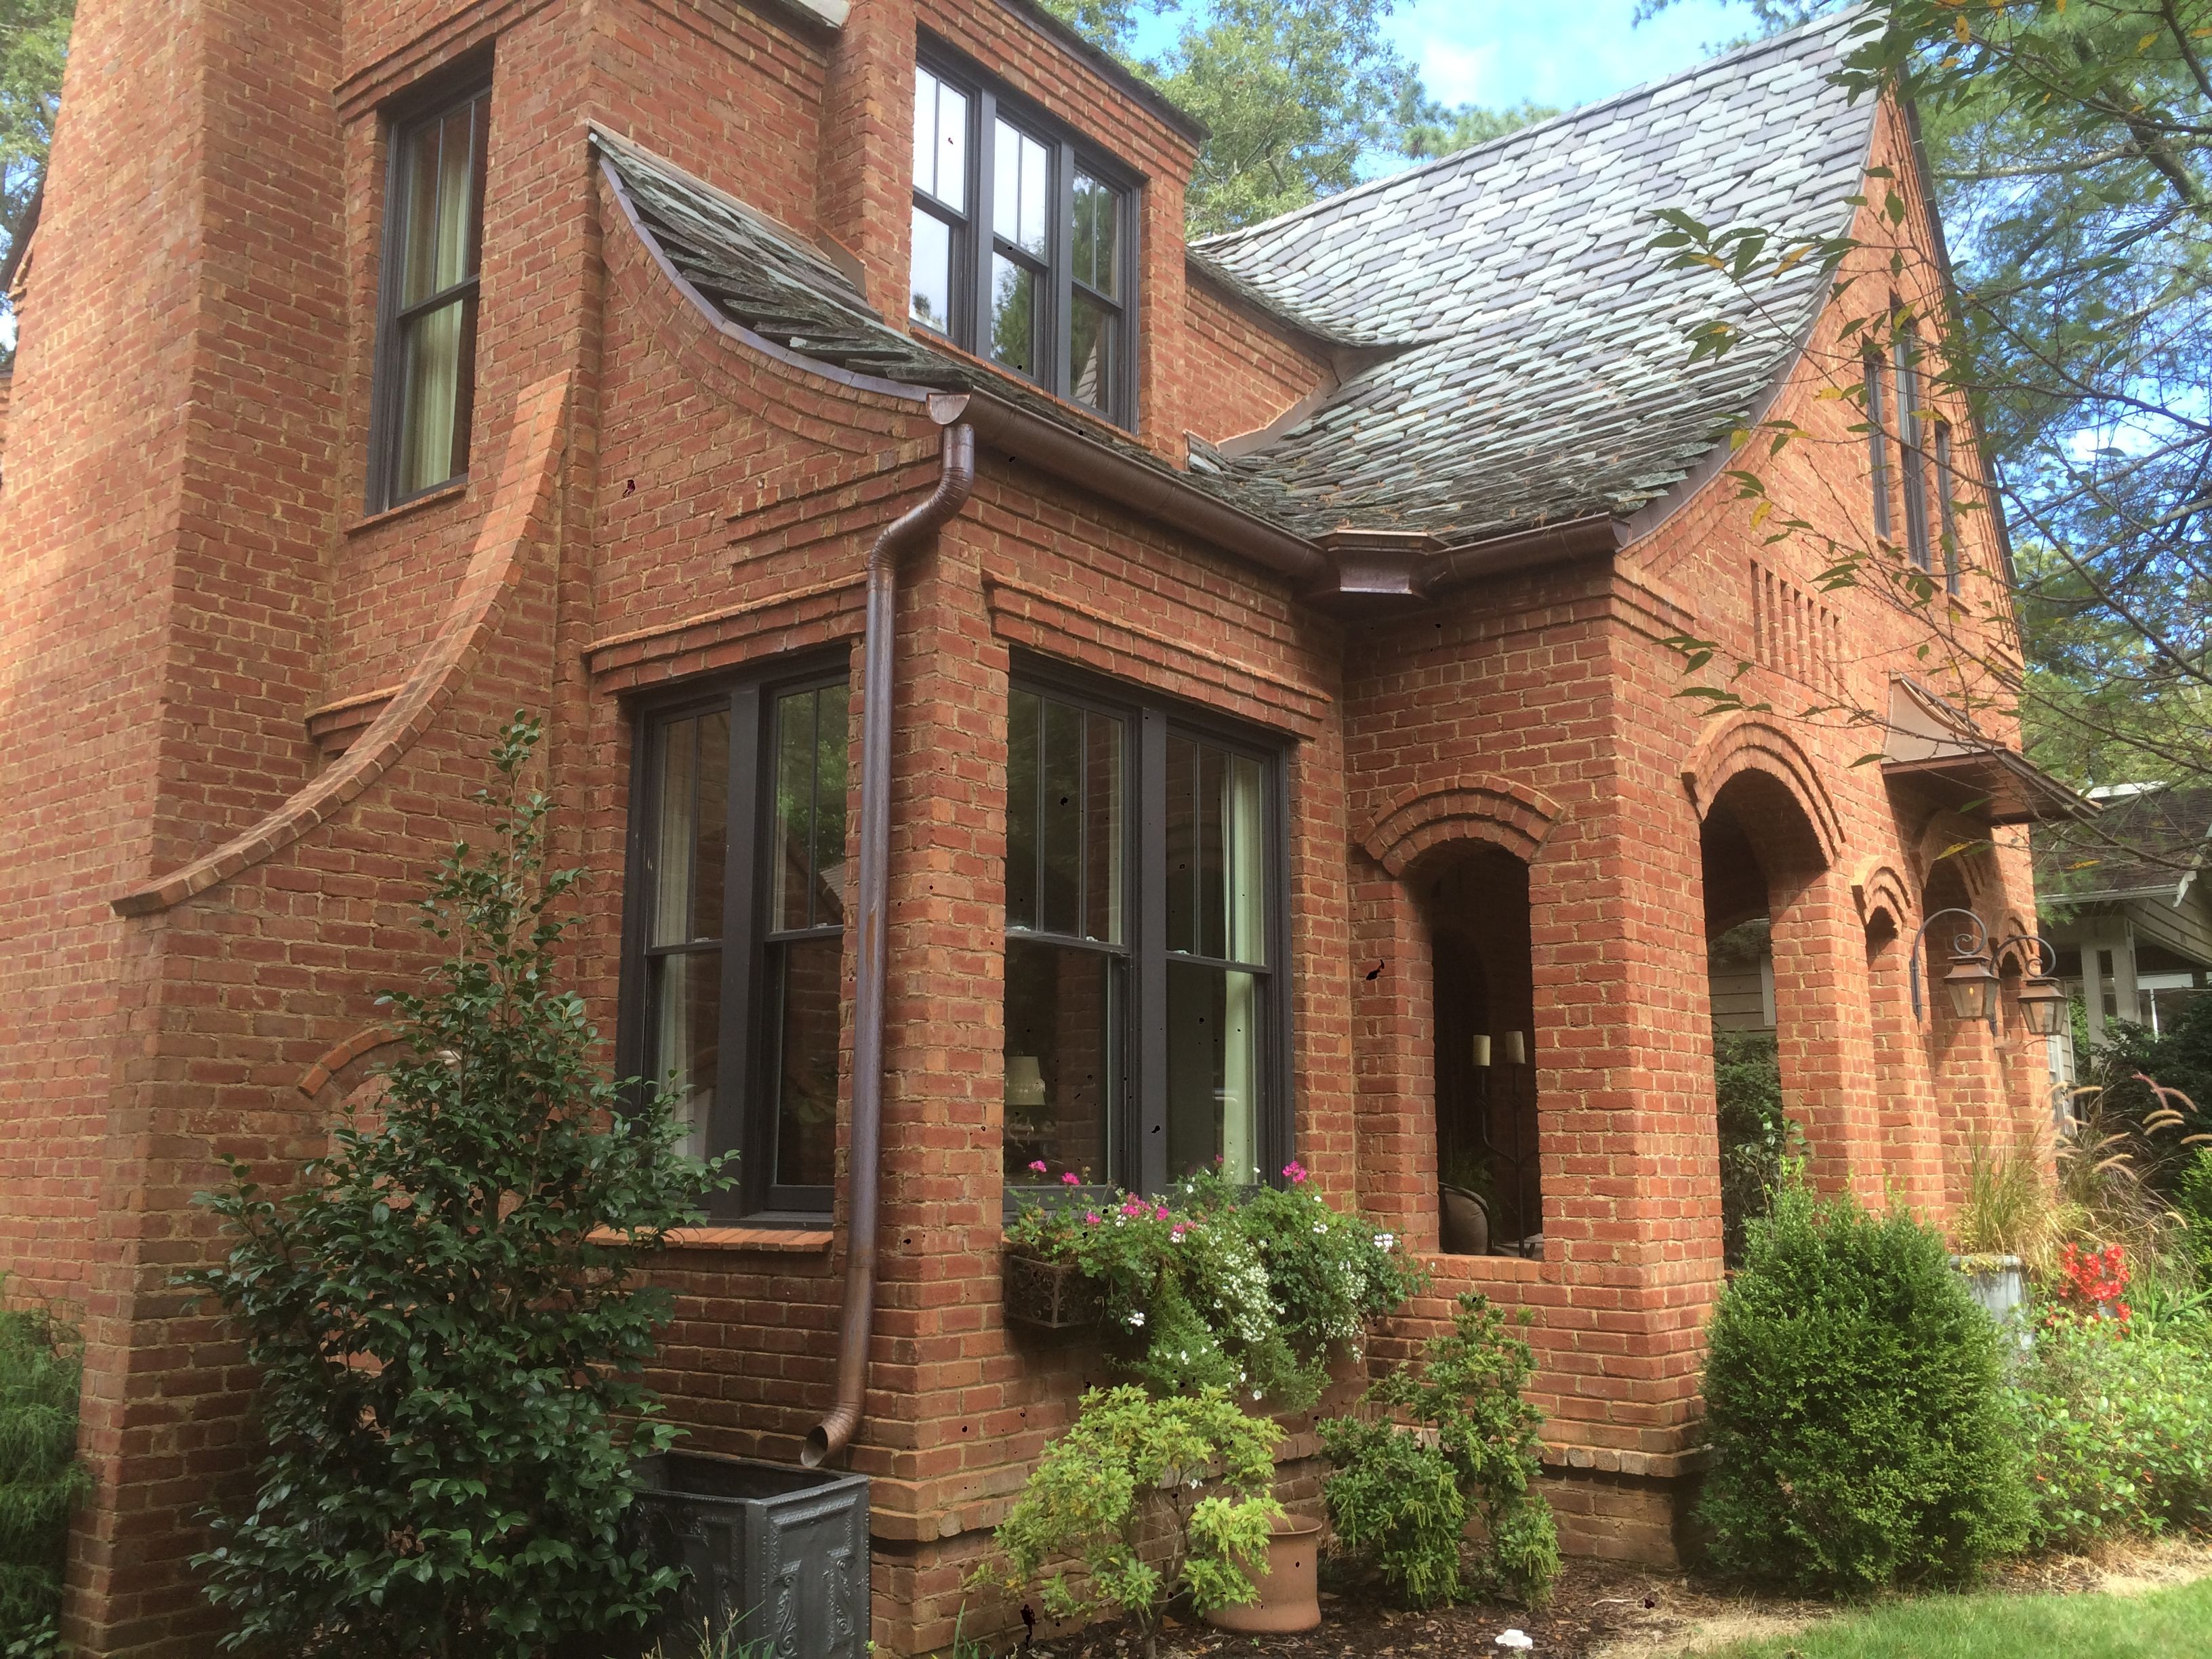 Structural Masonry Home In Decatur Ga Design Build Clay Chapman Hope For Architecture 1000yearhouse Building Design Chapman House House Styles